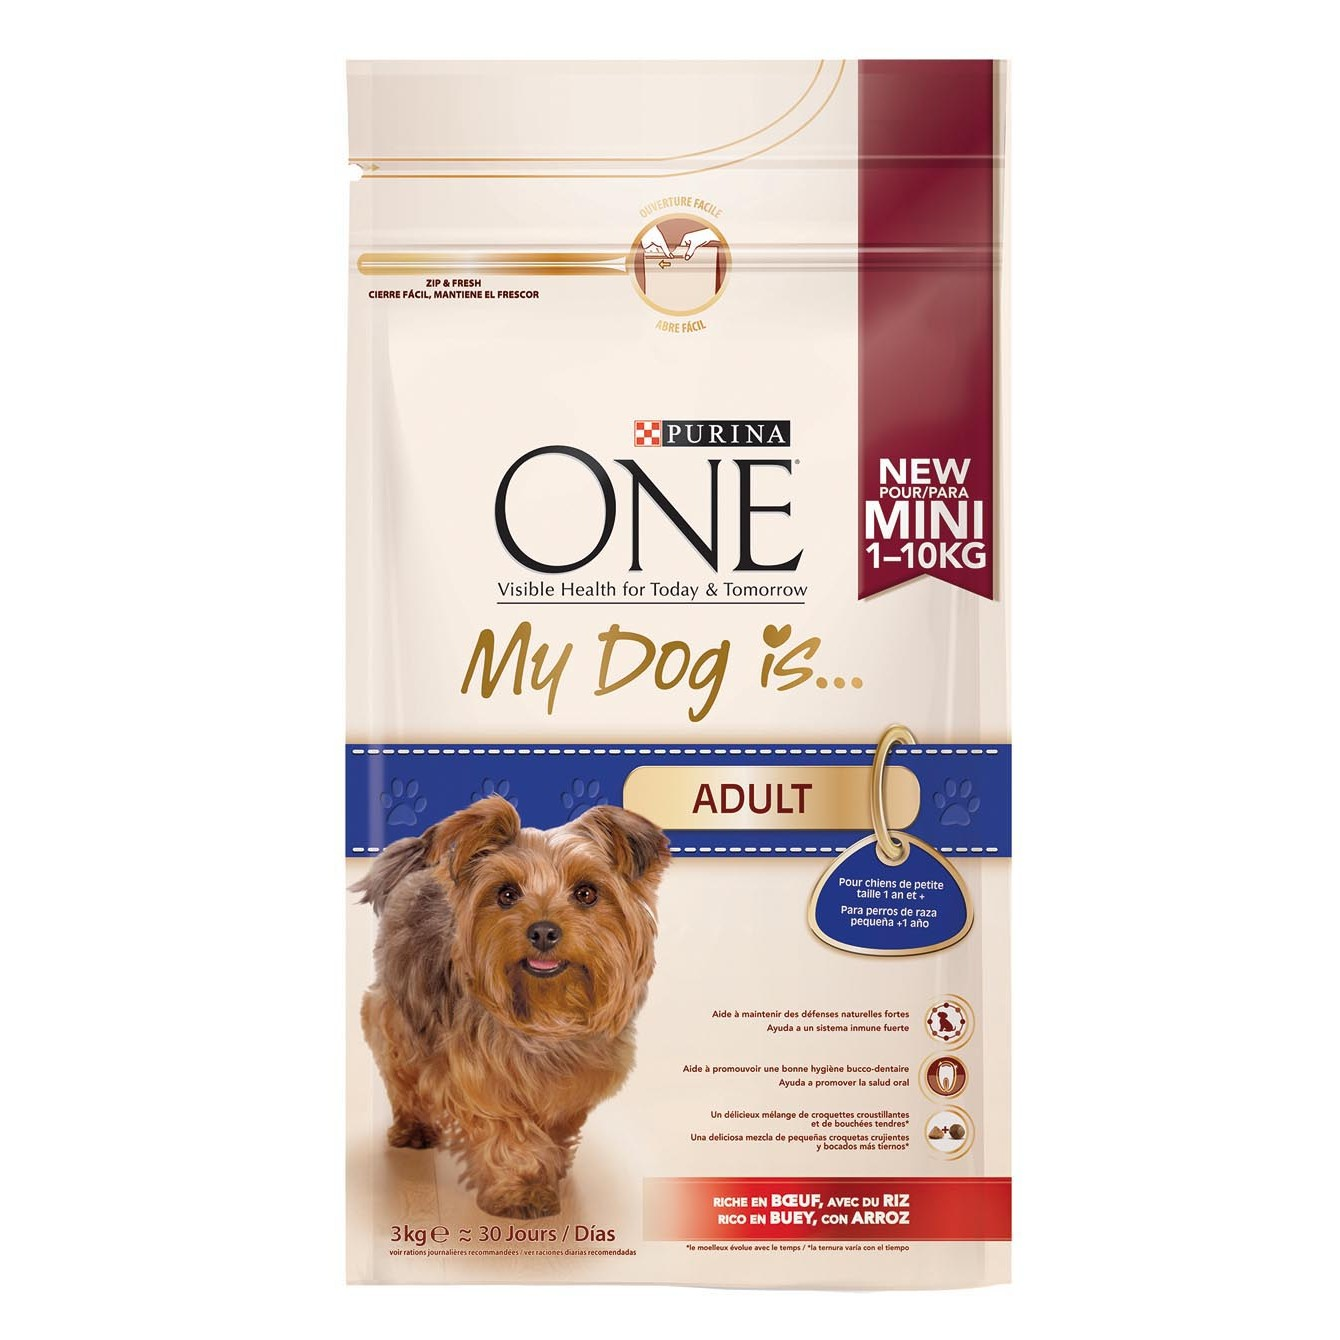 Purina One my dog is perro mini adult buey arroz de 3kg.